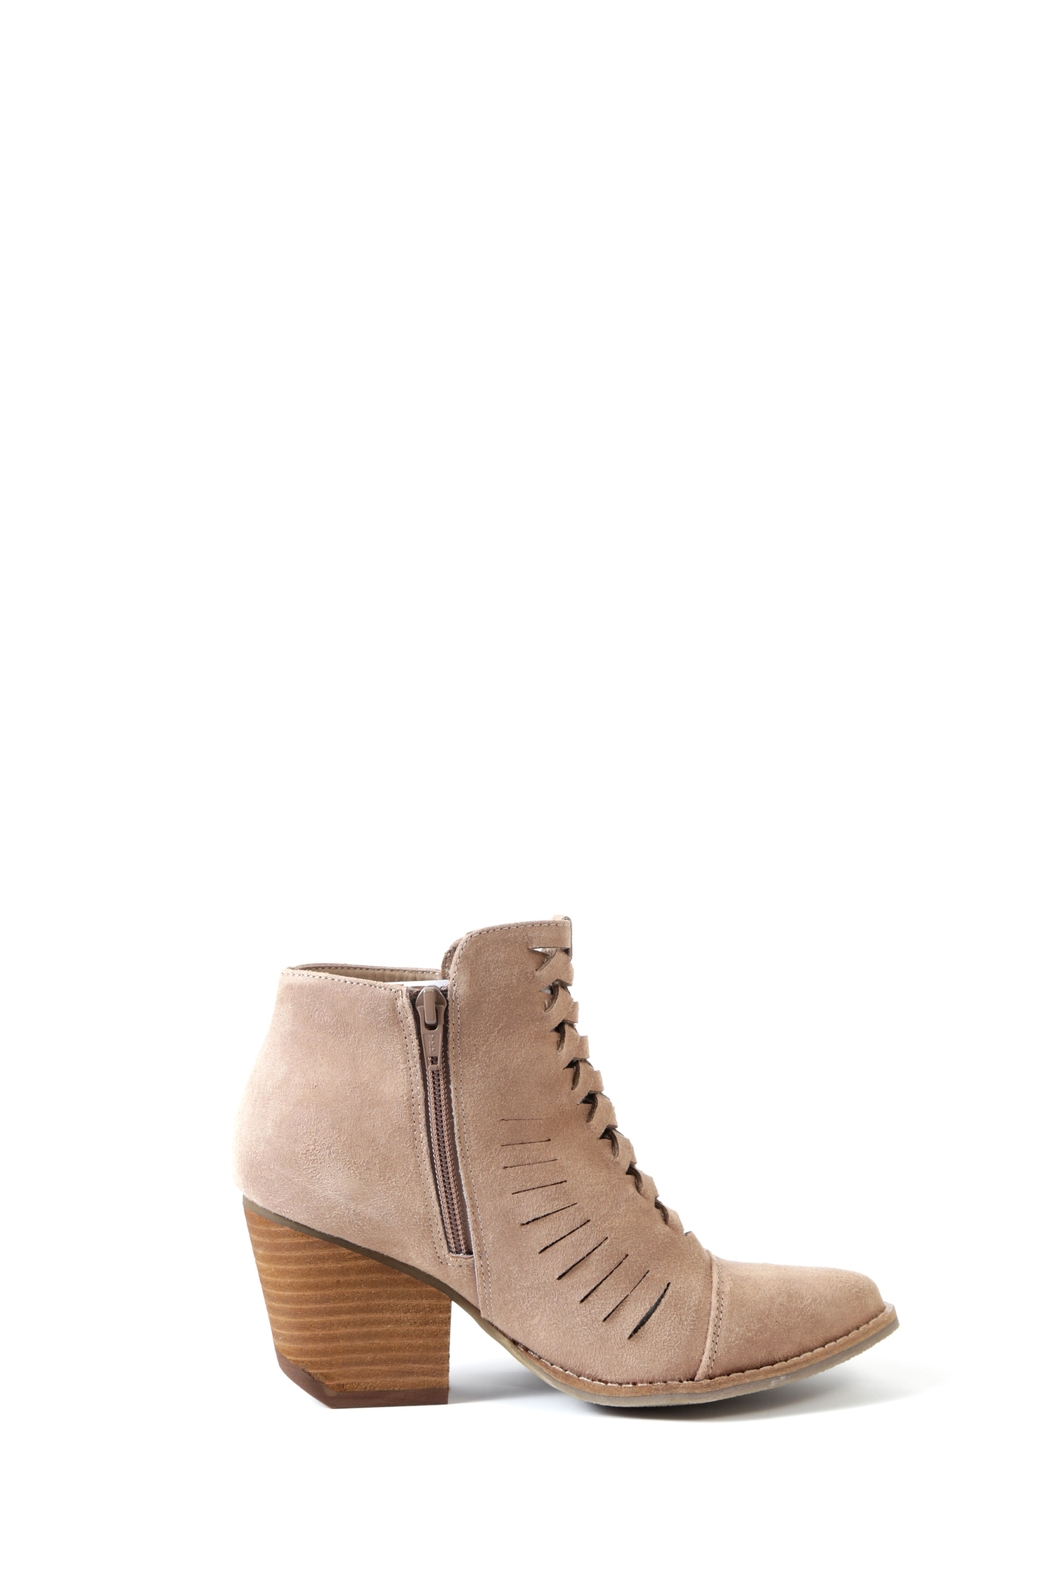 Coconuts by Matisse Ally Stacked Heel Bootie - Side Cropped Image